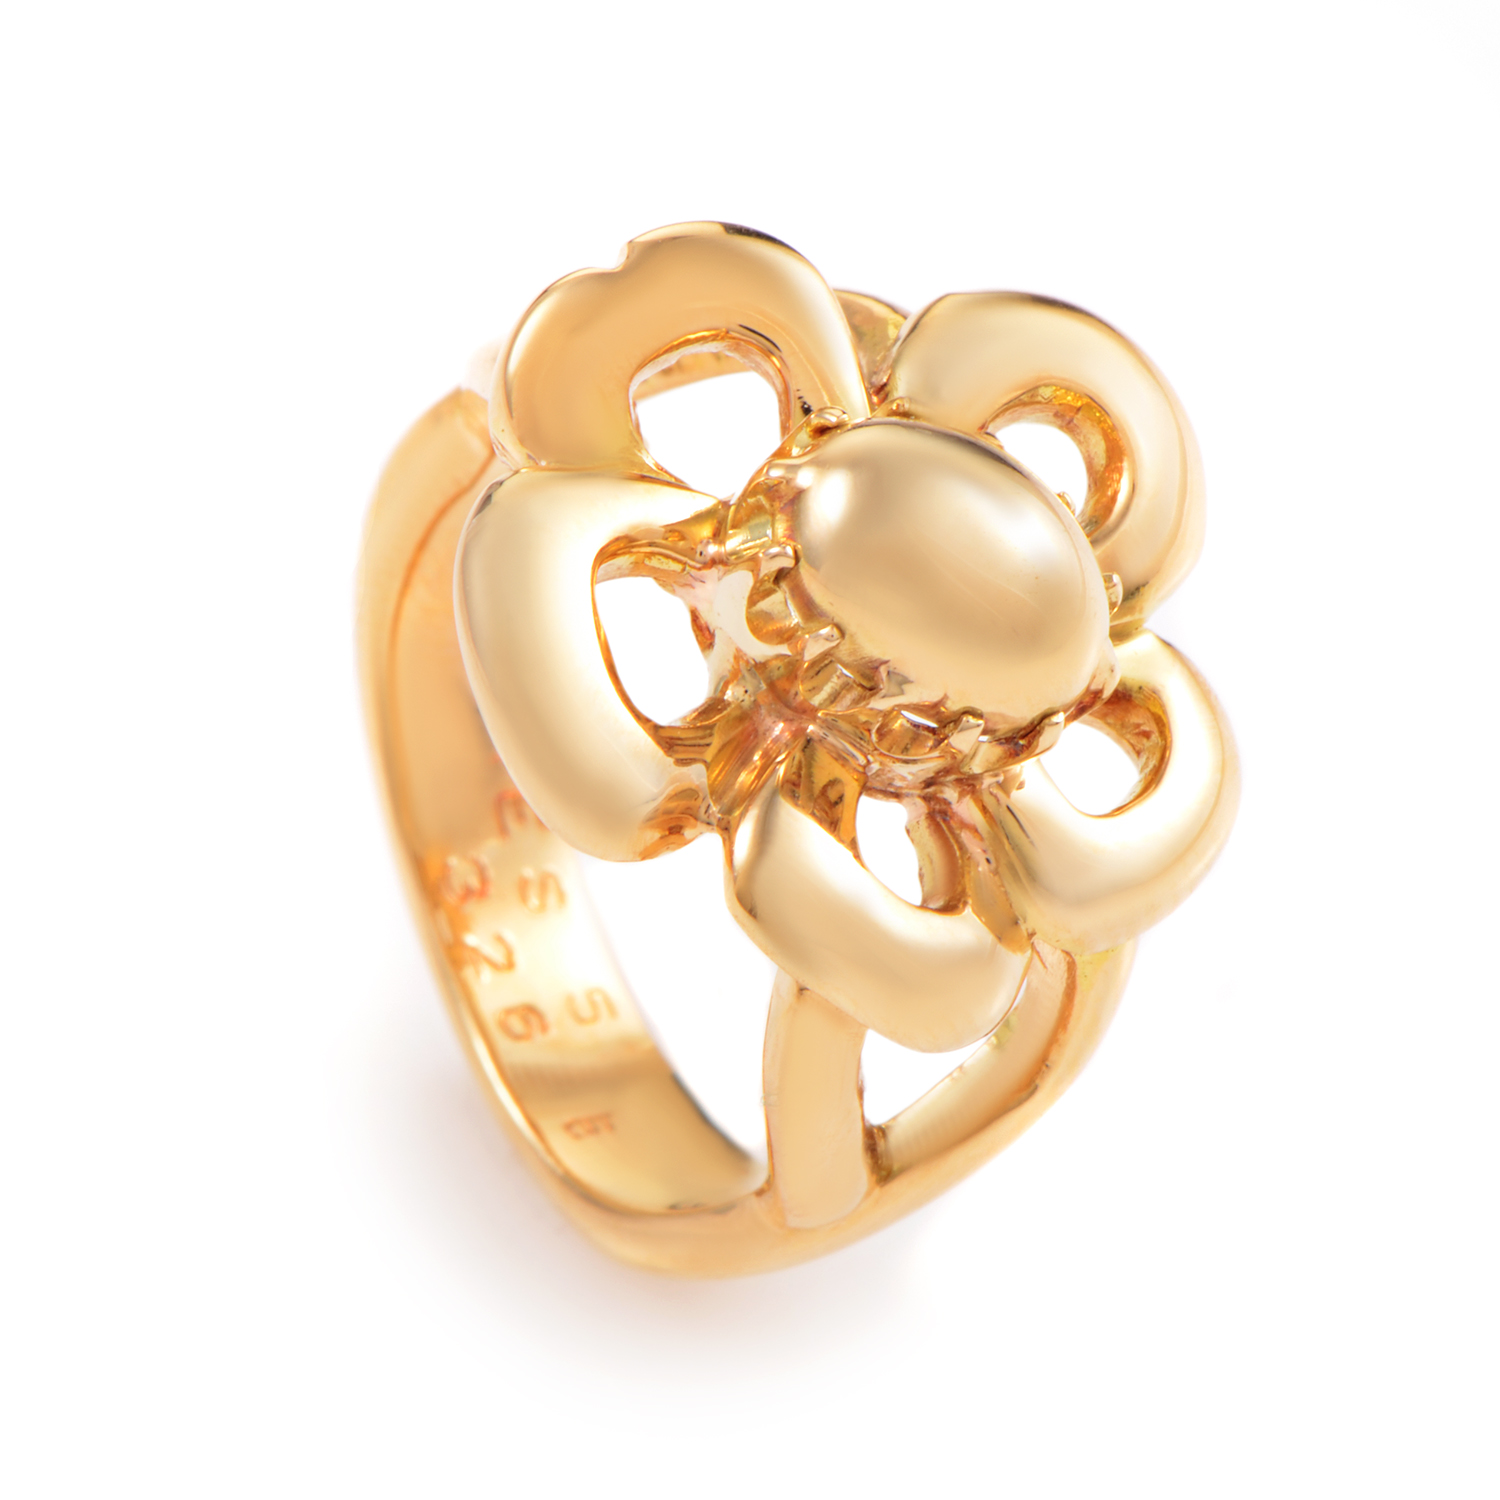 Hermès 18K Yellow Gold Flower Ring